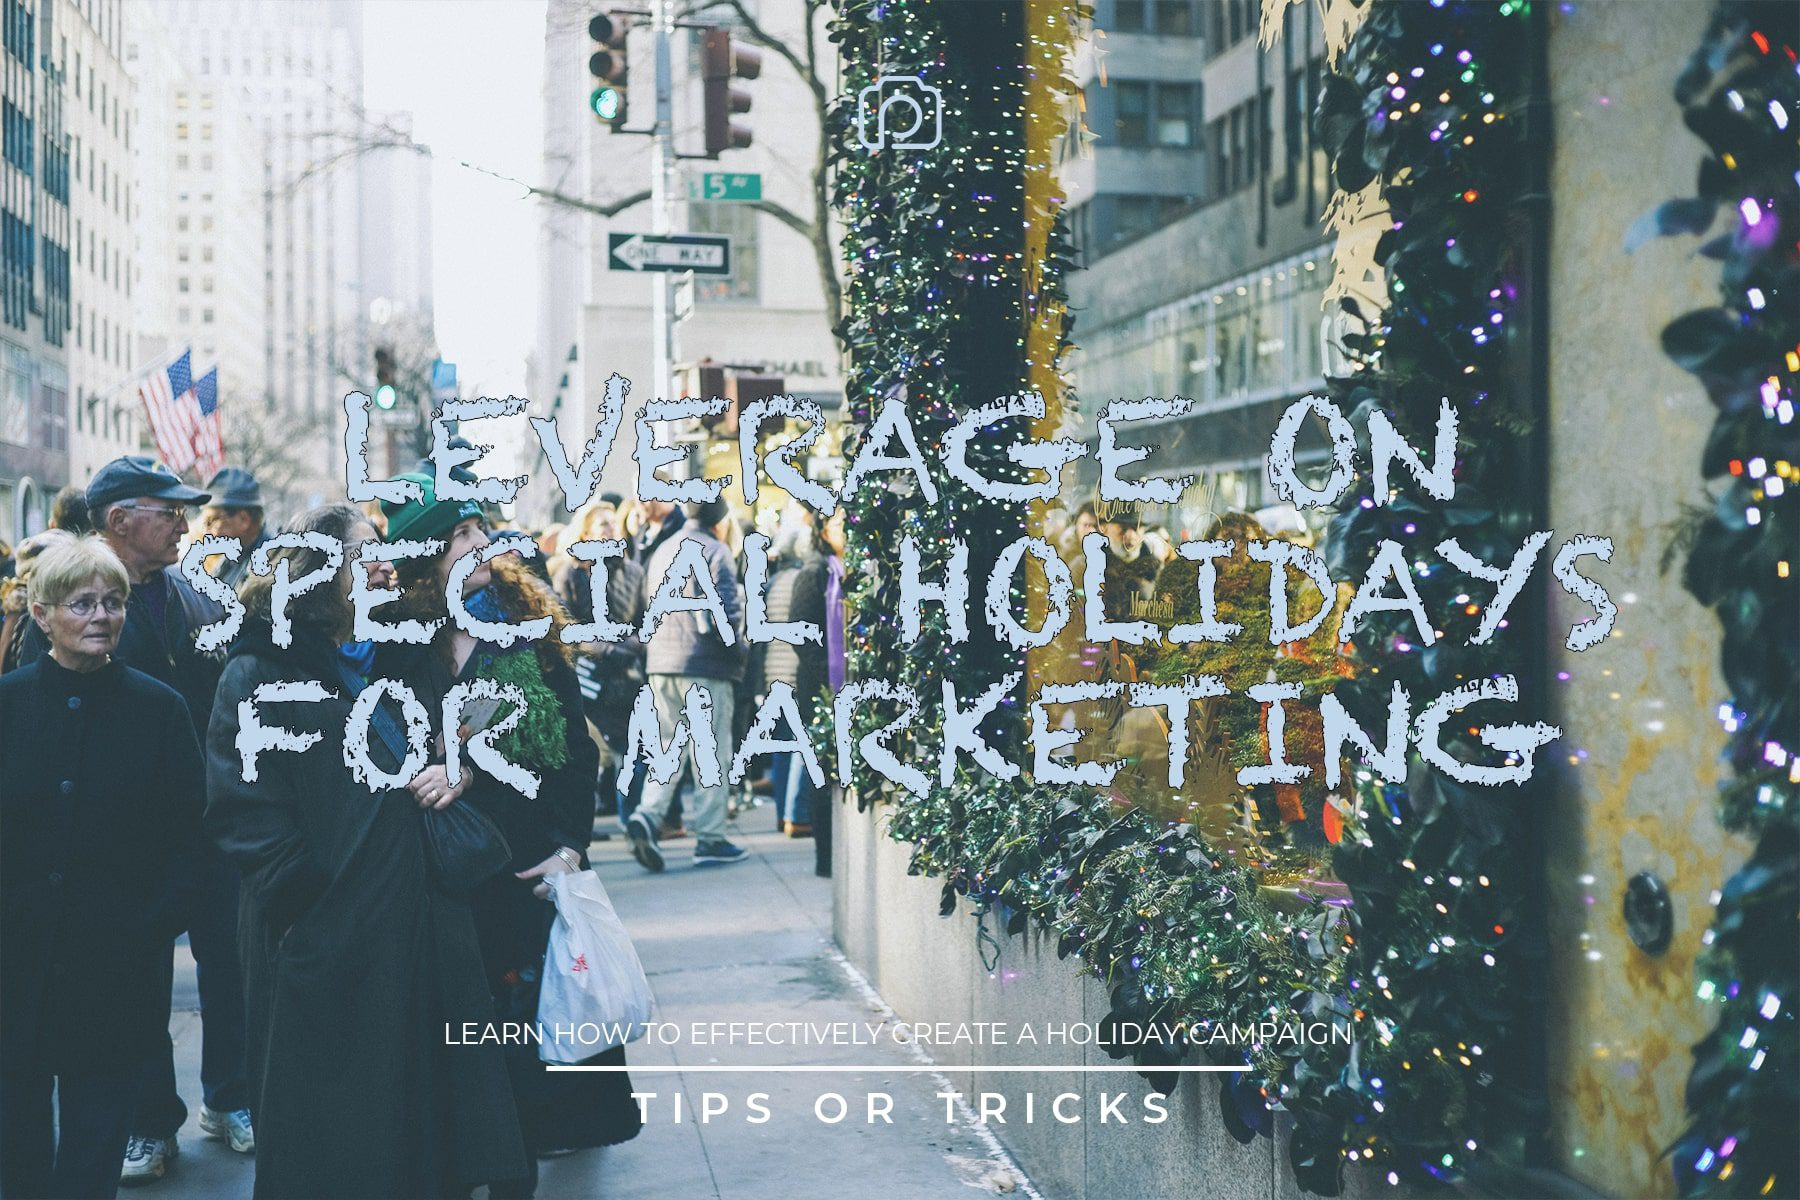 How brands leverage on special holidays for marketing